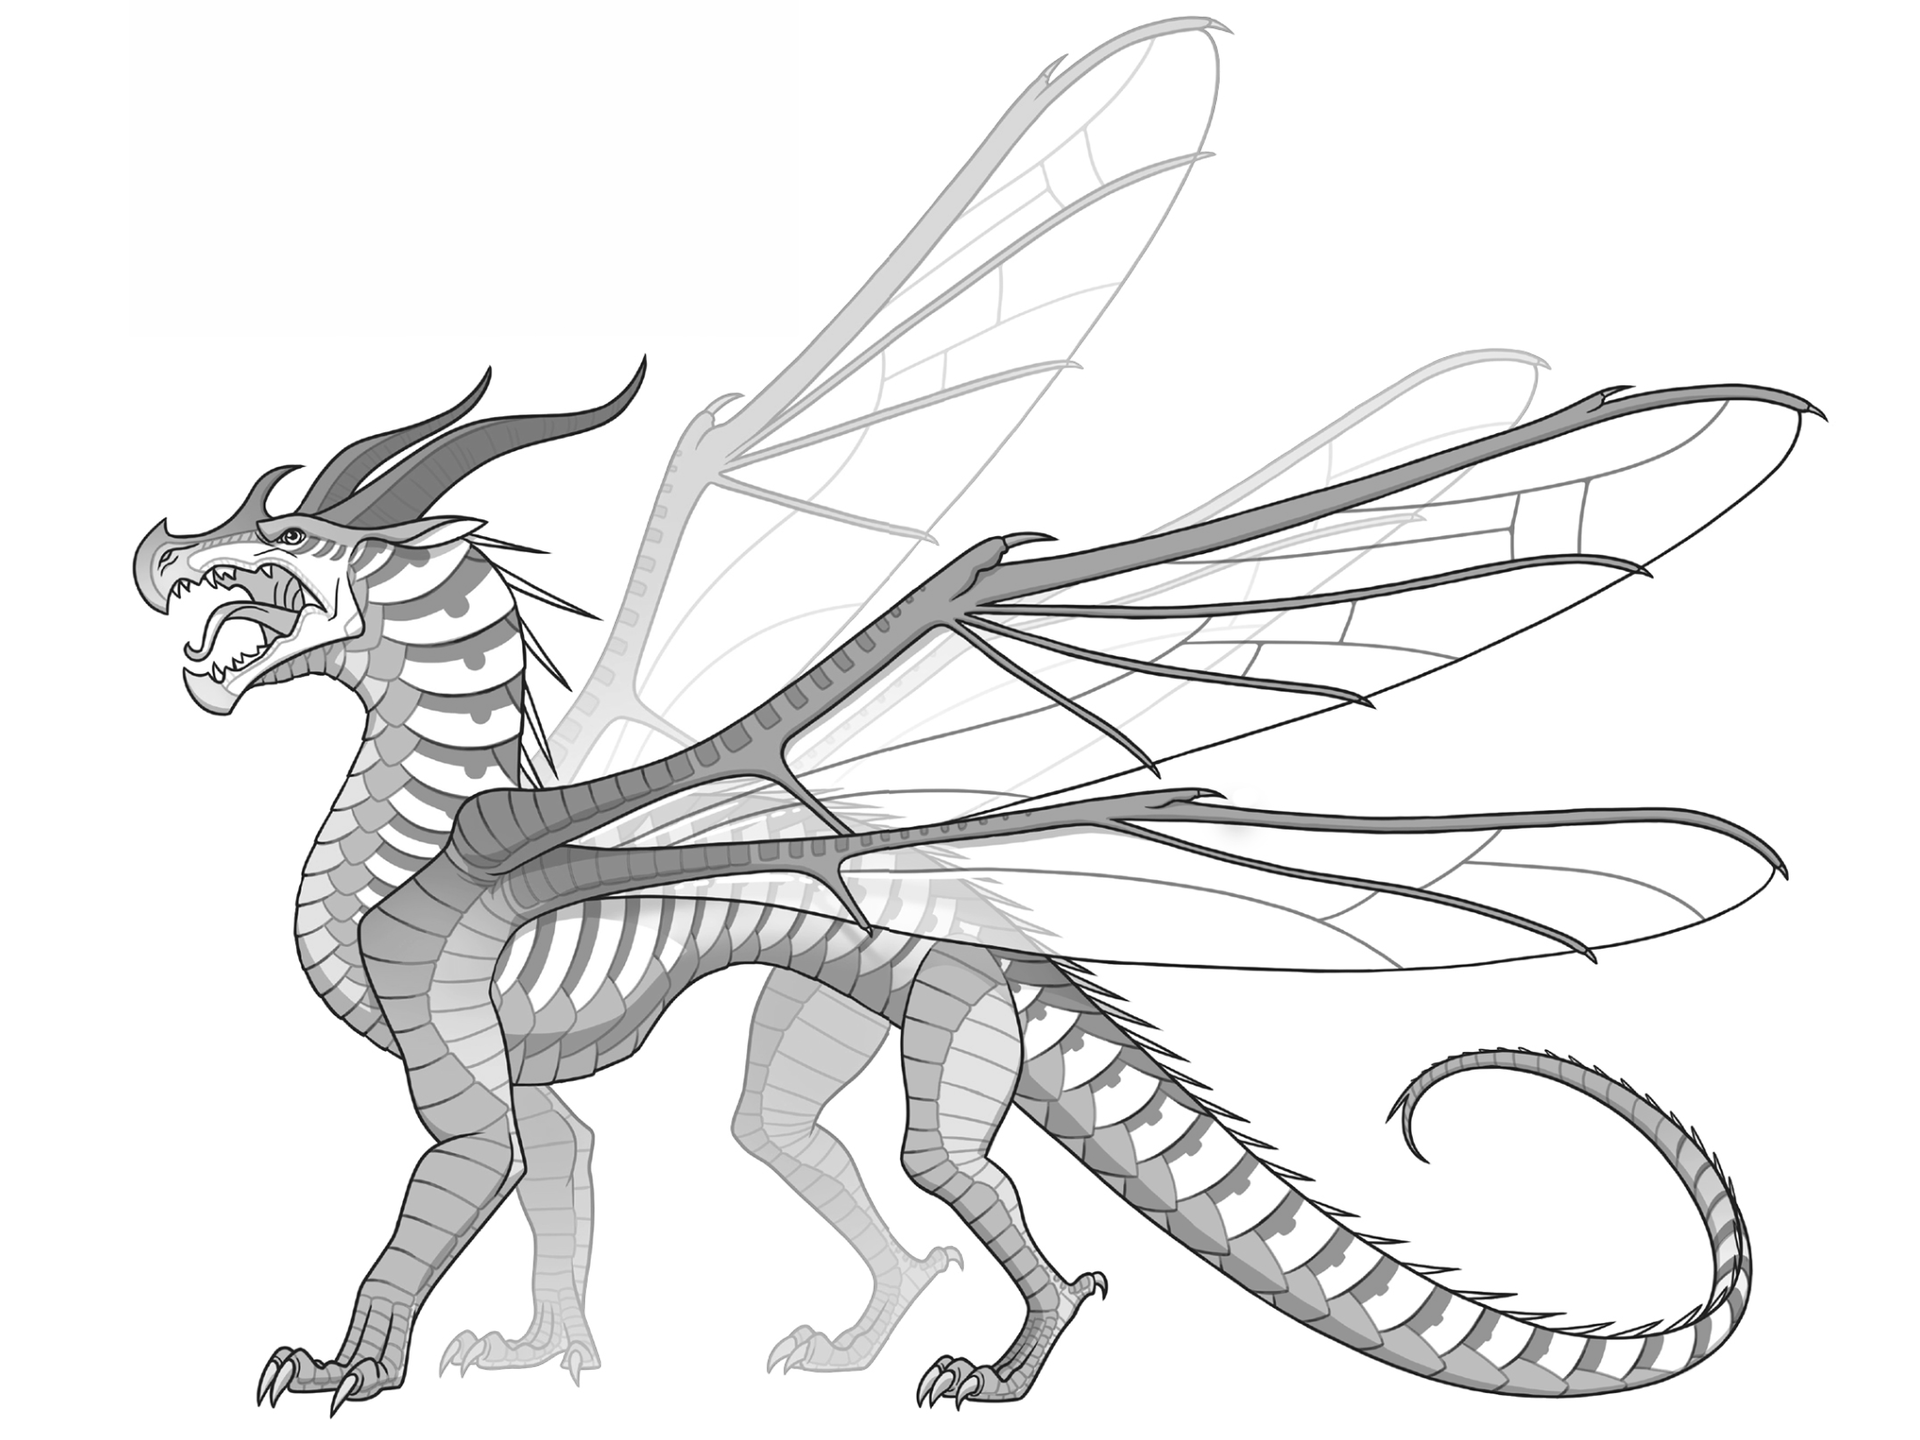 Wings Of Fire Color Edits Complete Hivewing Line Art For Anyfandomhere Wings Of Fire Wings Of Fire Dragons Fire Dragon